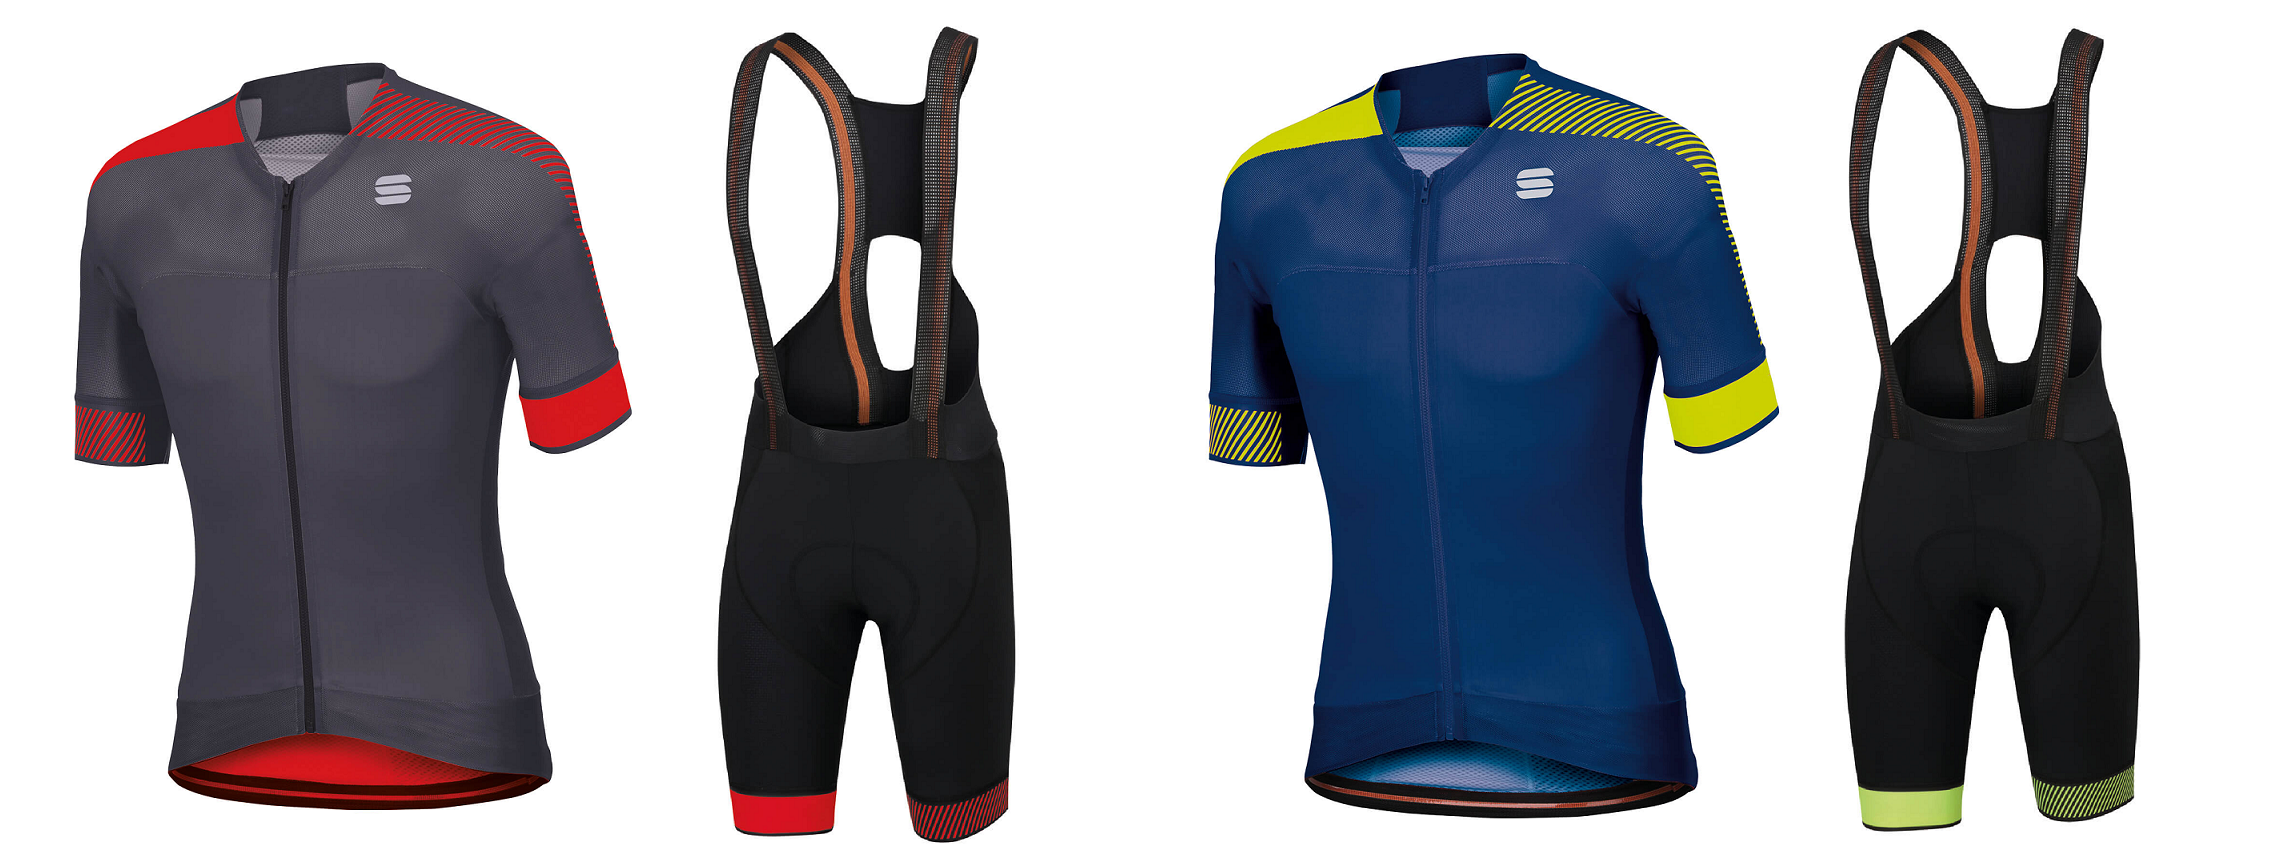 the sportful bodyfit pro mens jersey and shorts